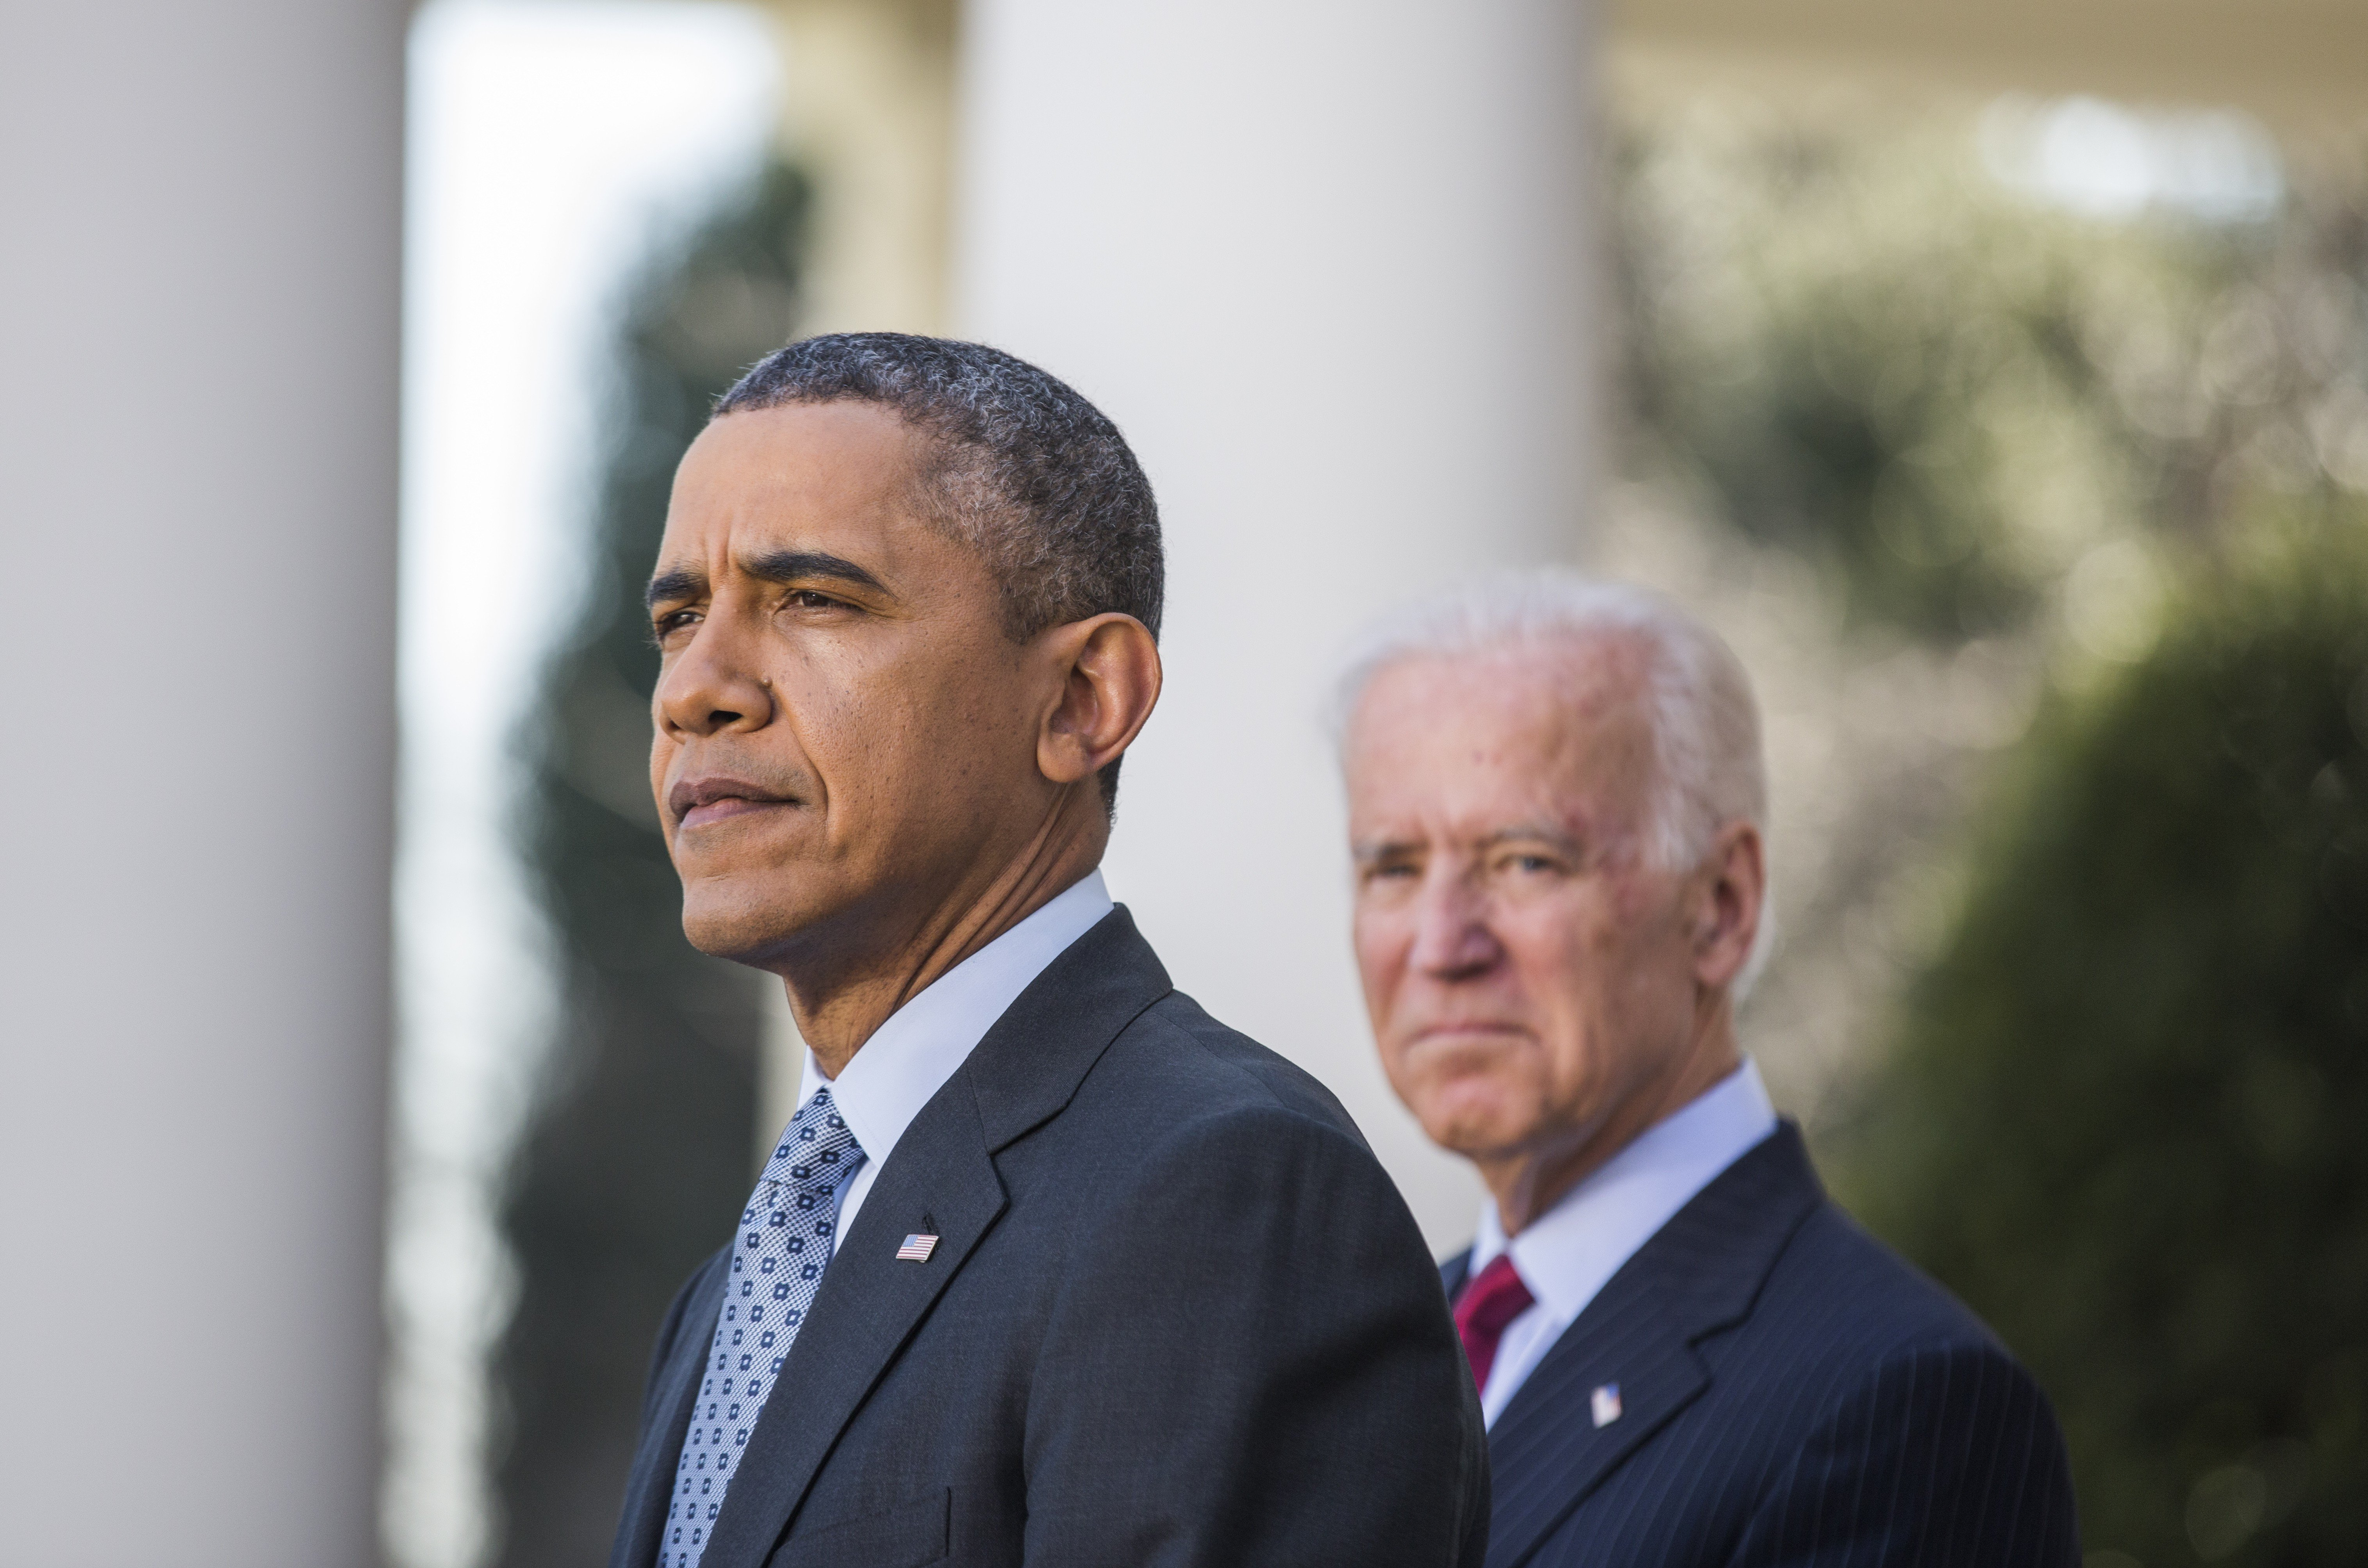 President Barack Obama, with Vice President Joe Biden, speaks about the Affordable Care Act in the Rose Garden.